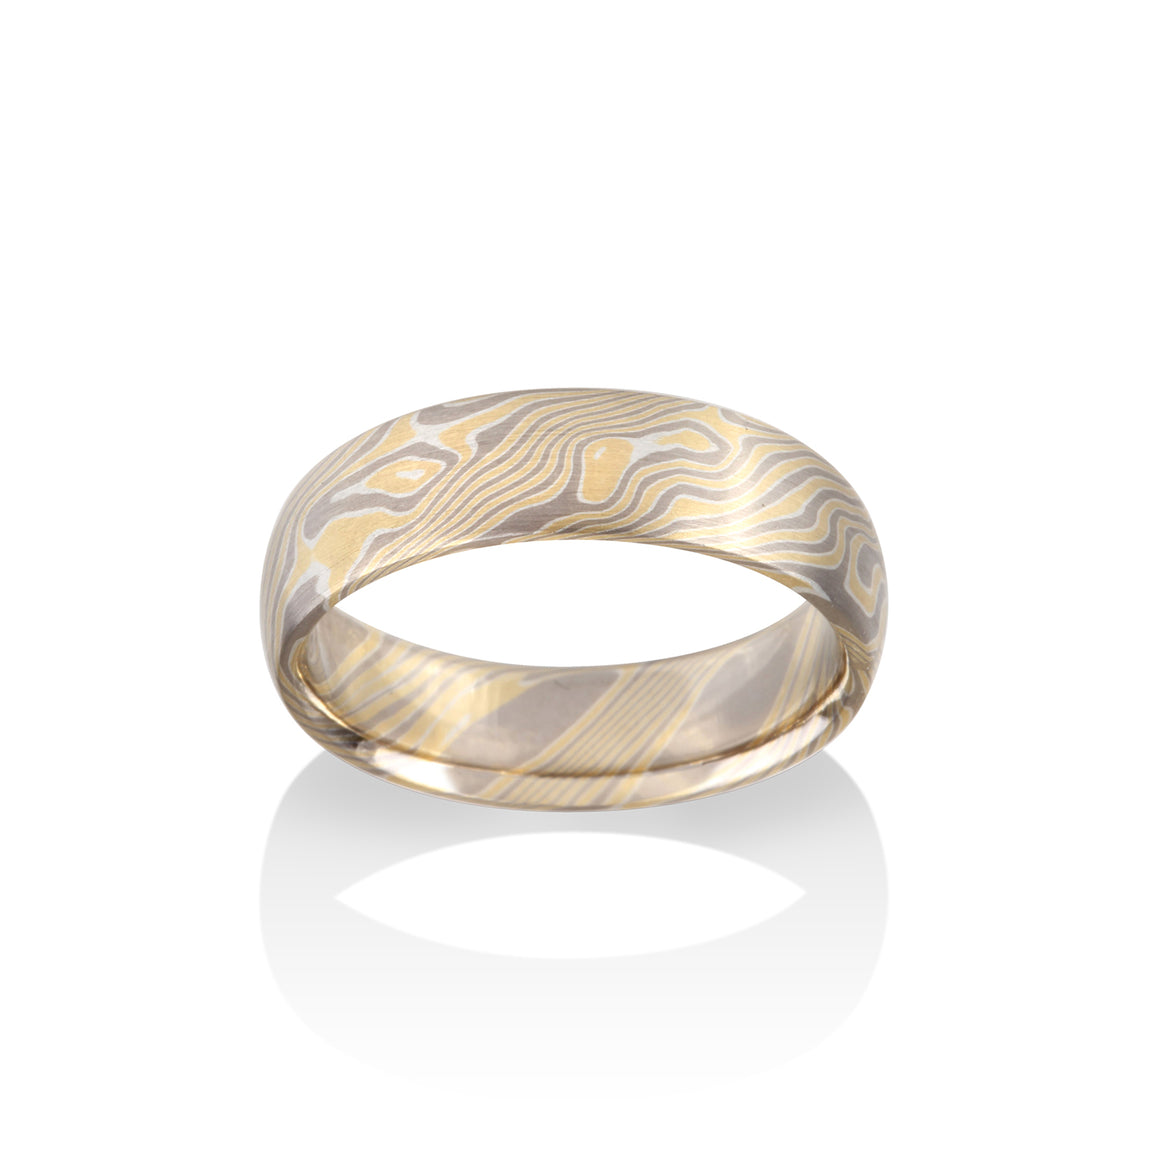 Chris Ploof Birch 18K Yellow Gold, Pd500 and Silver Mokume Ring